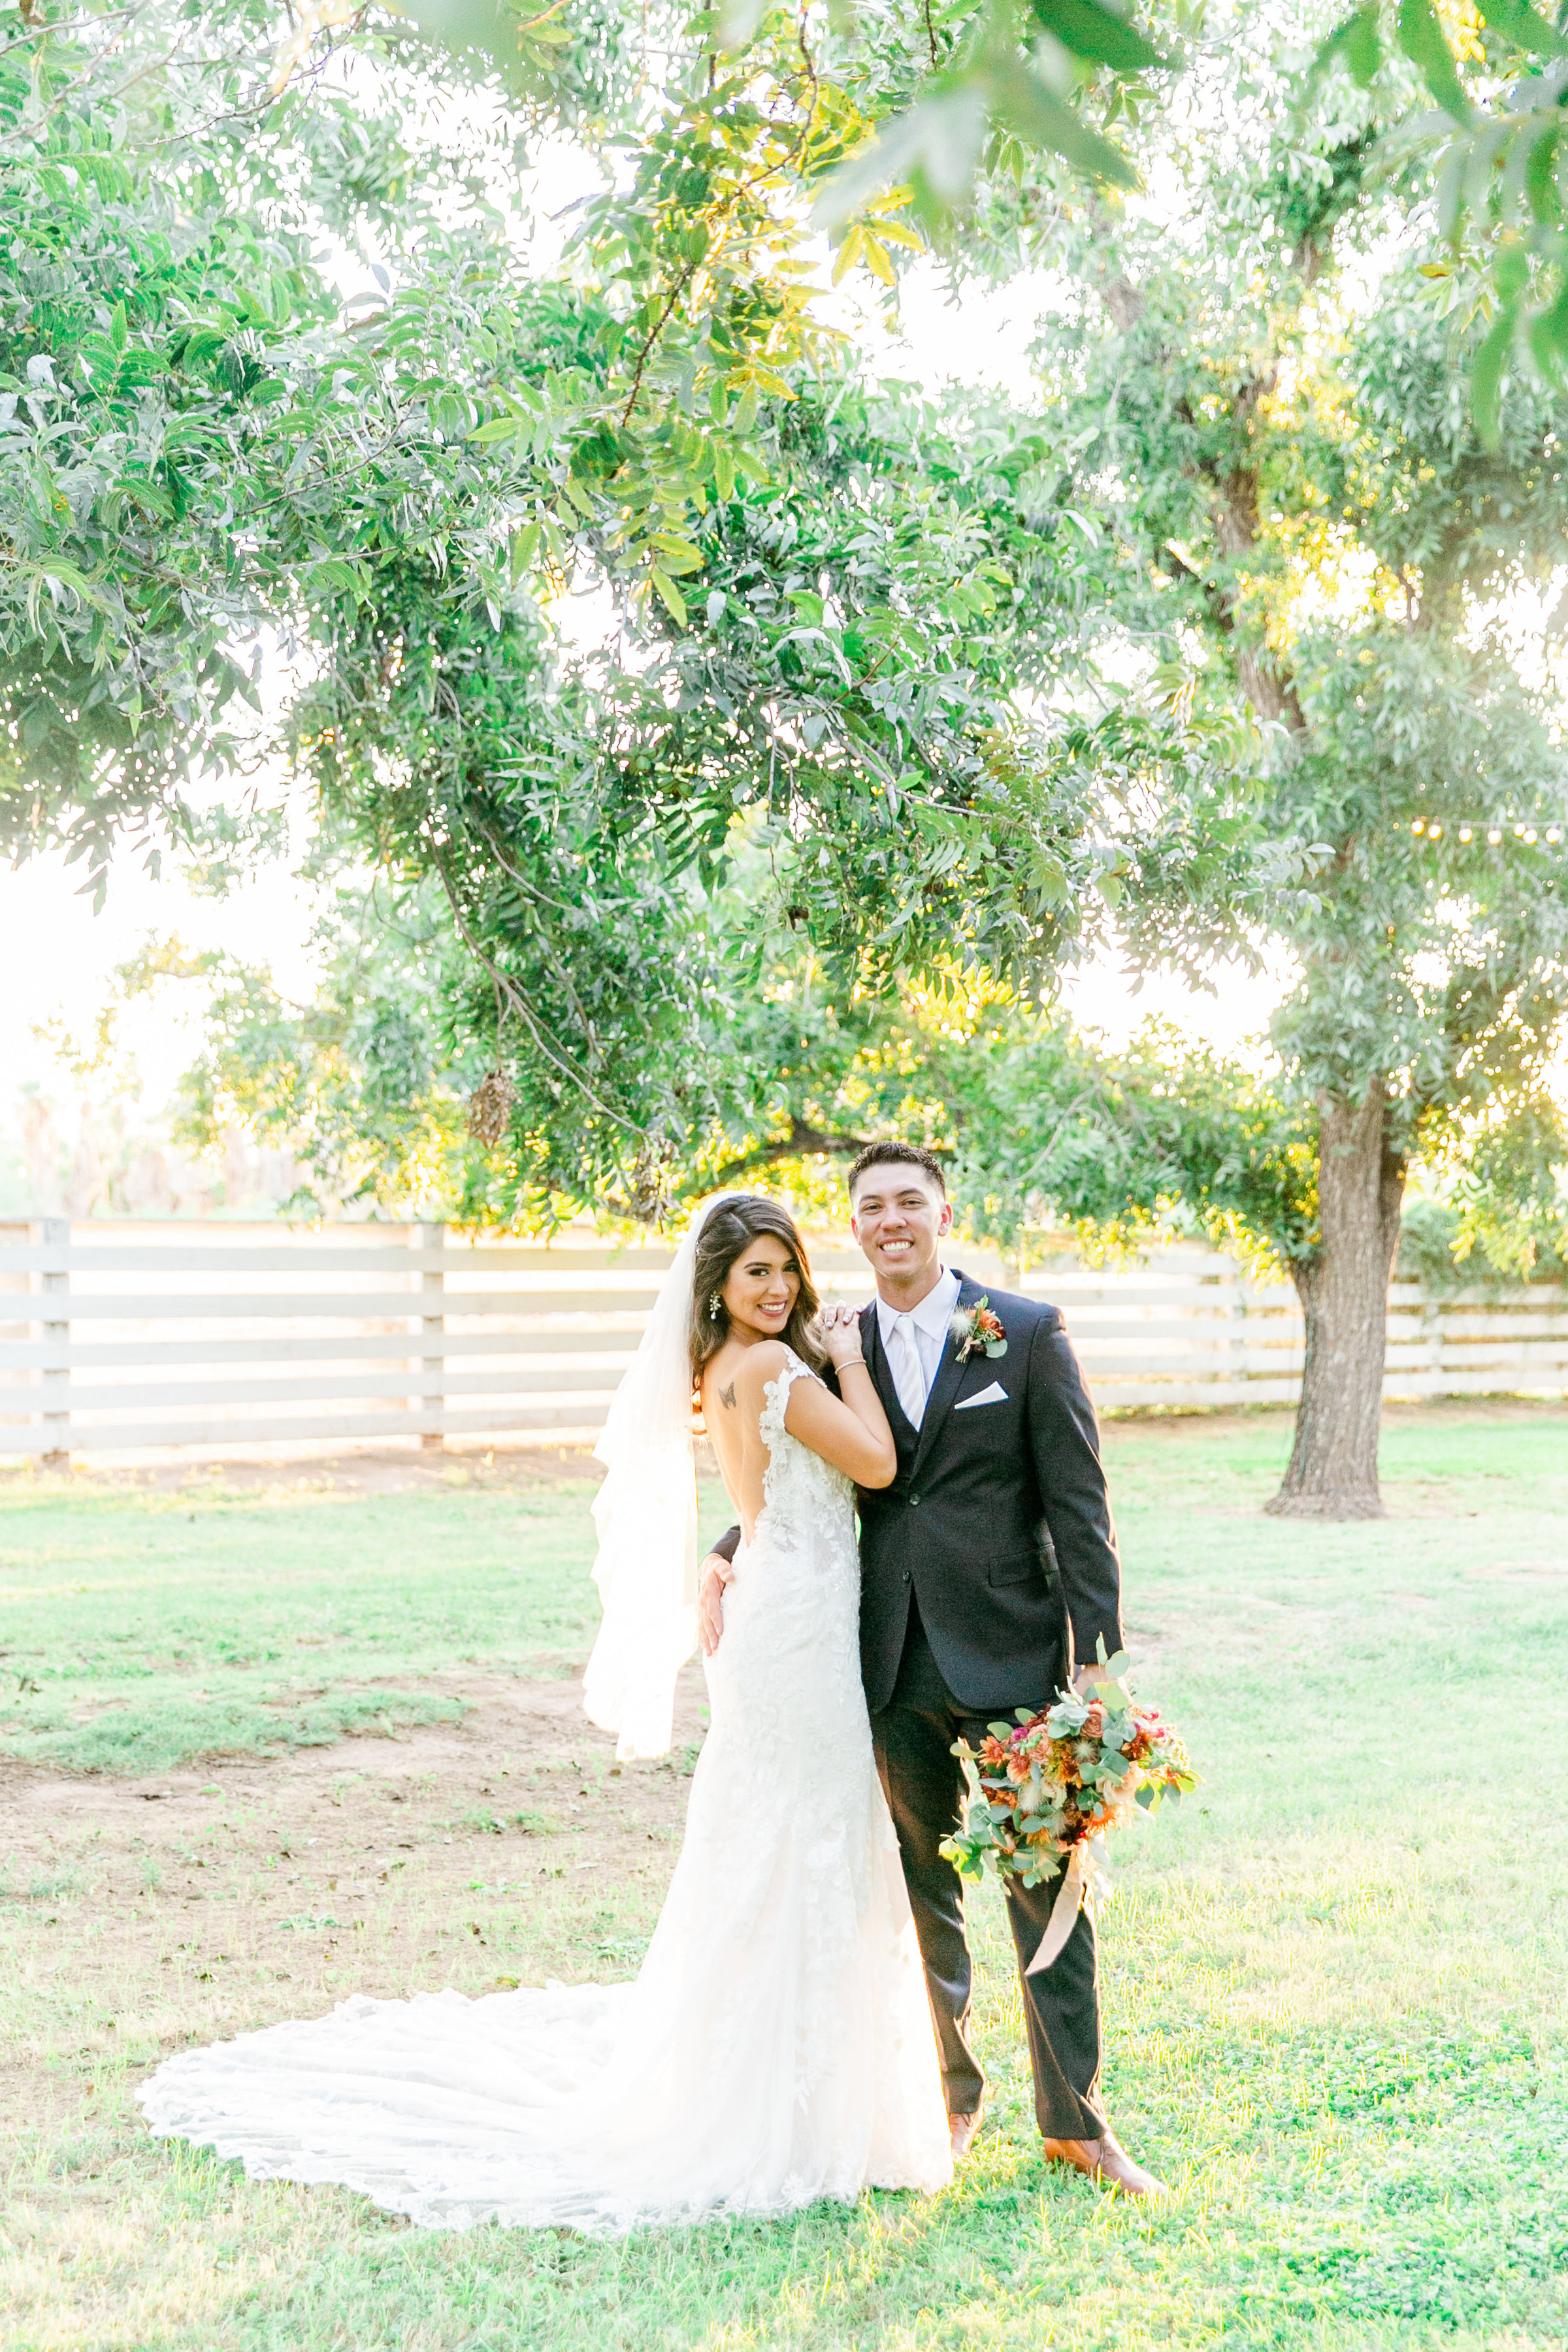 Karlie Colleen Photography - Phoenix Arizona - Farm At South Mountain Venue - Vanessa & Robert-581